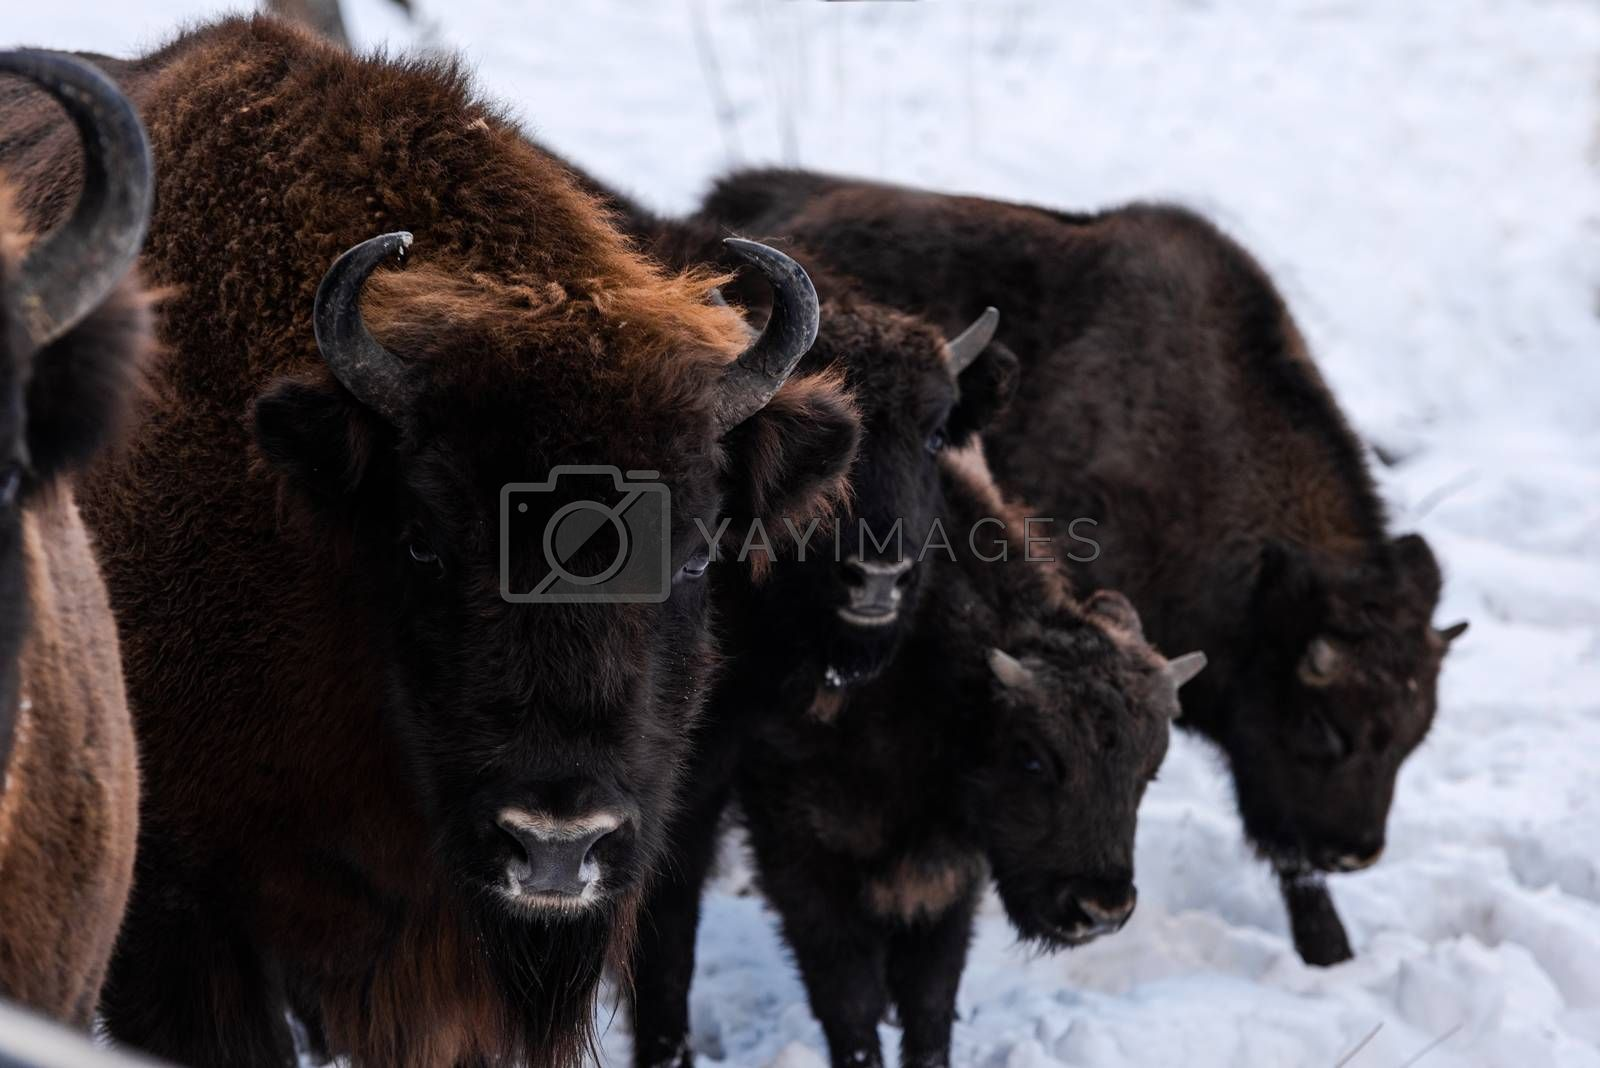 European bison (Bison bonasus) Family Portrait Outdoor at Winter Season.